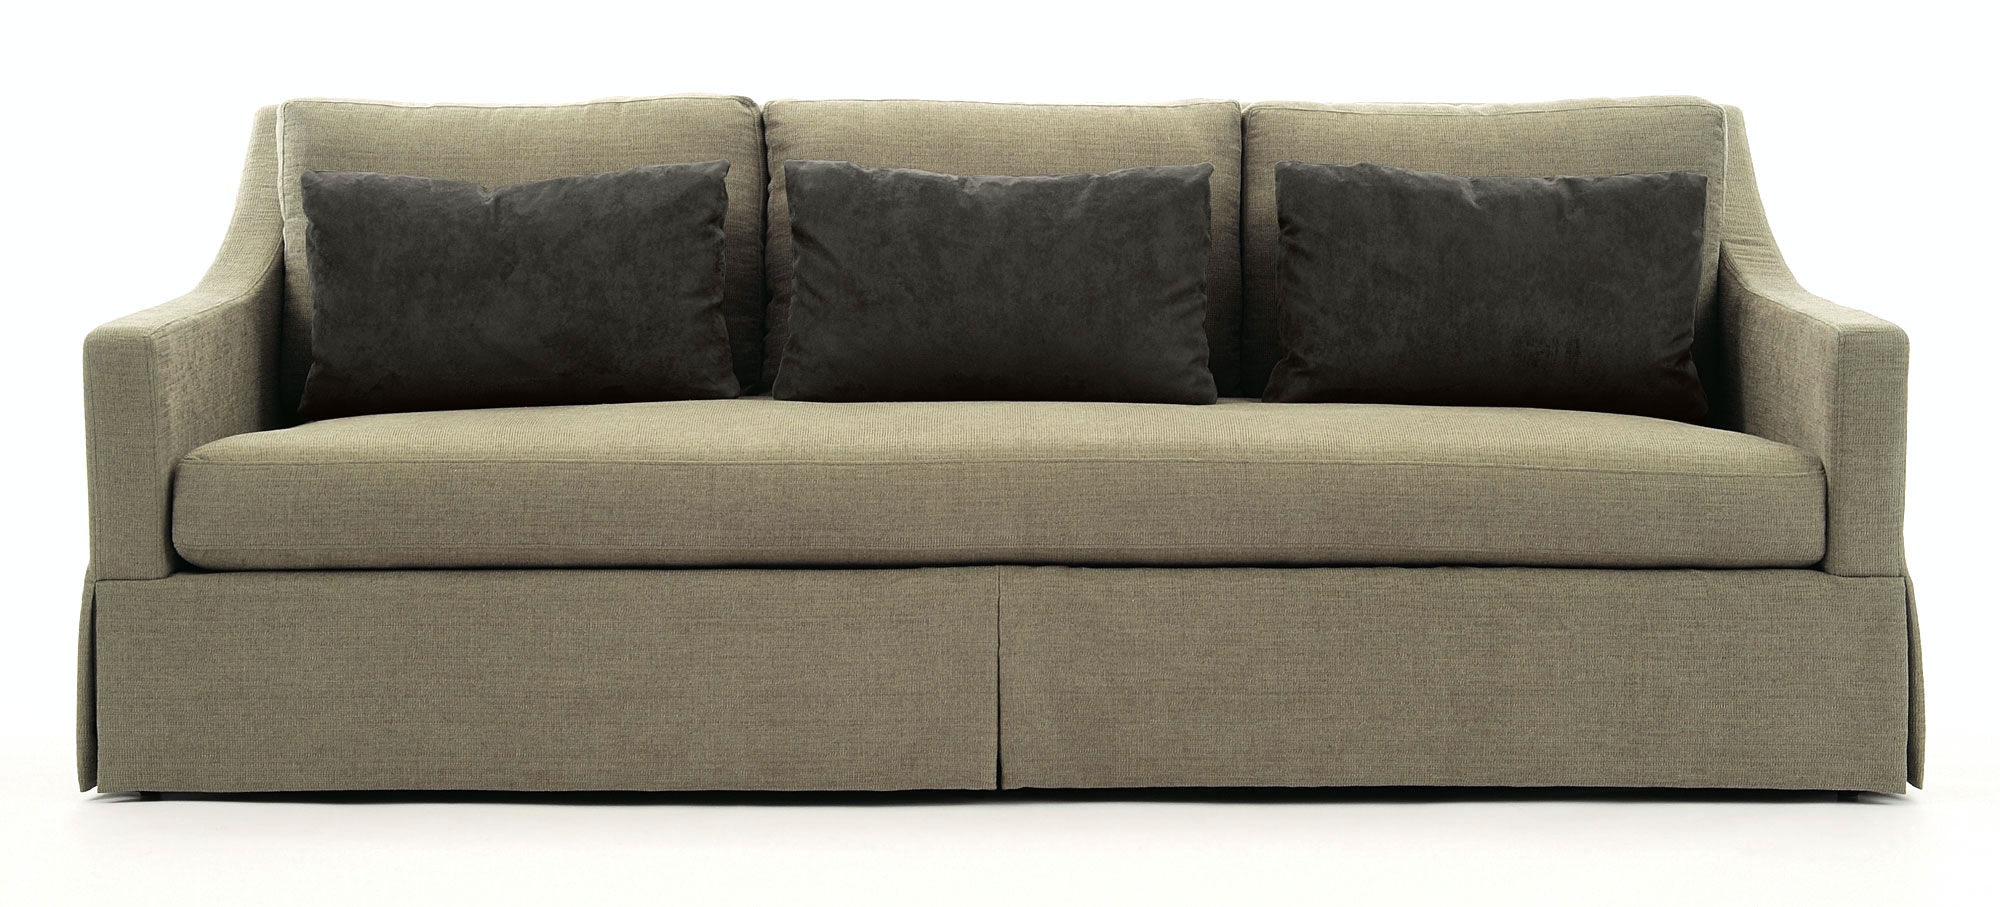 Bernhardt Interiors Living Room Sofa N2097 At Giorgi Brothers